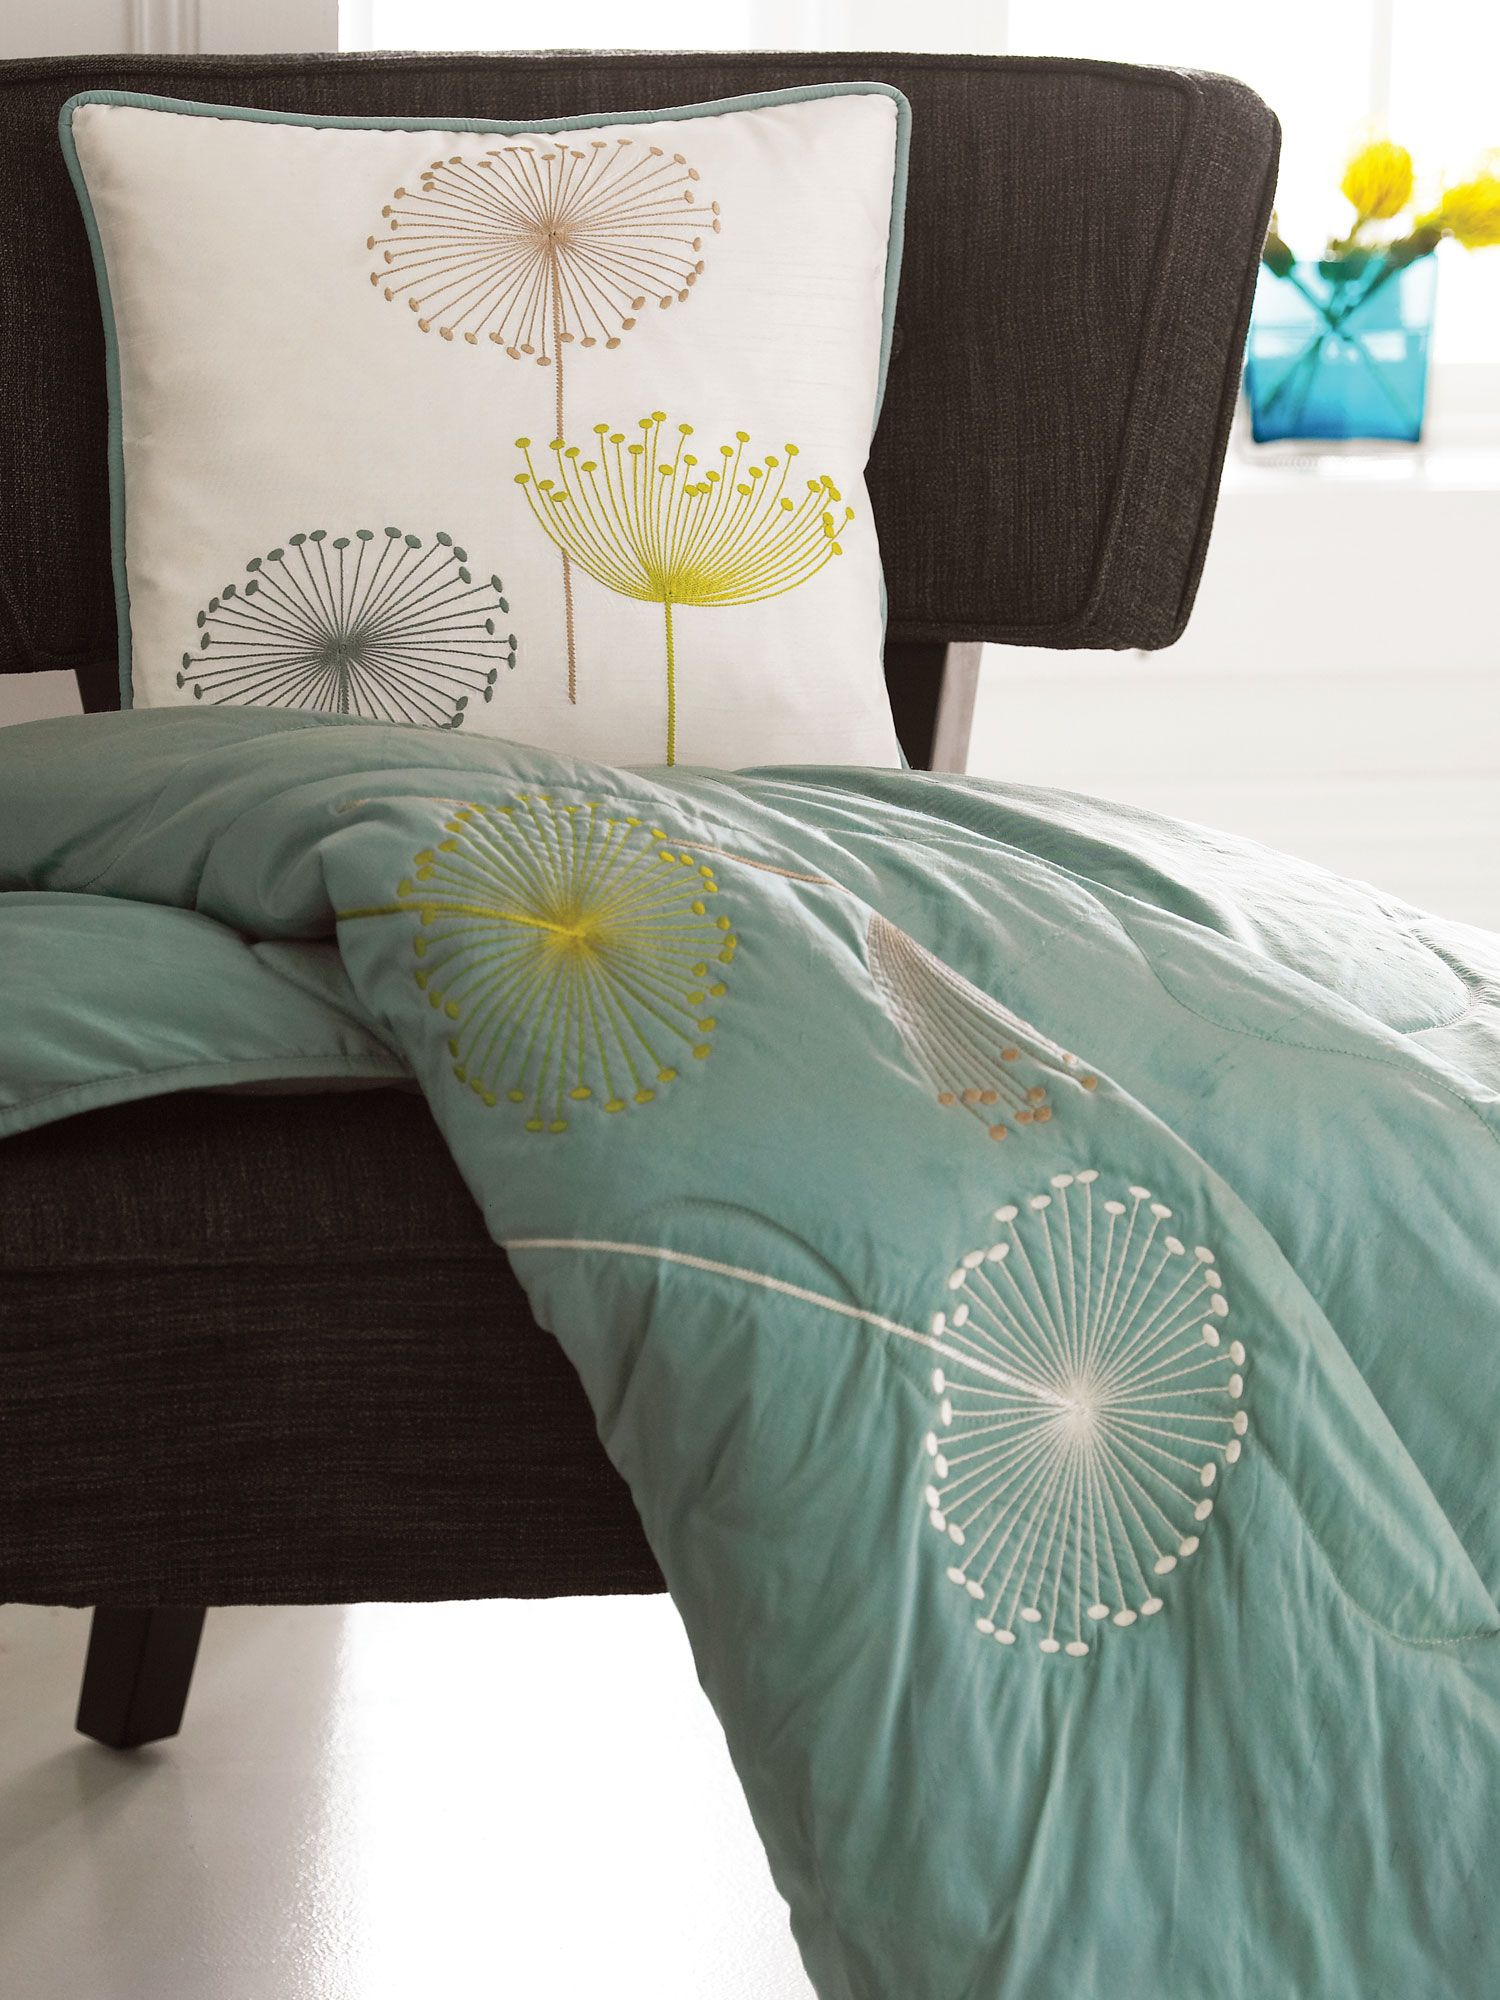 Guide2 Home Dandelion Clocks Bedding